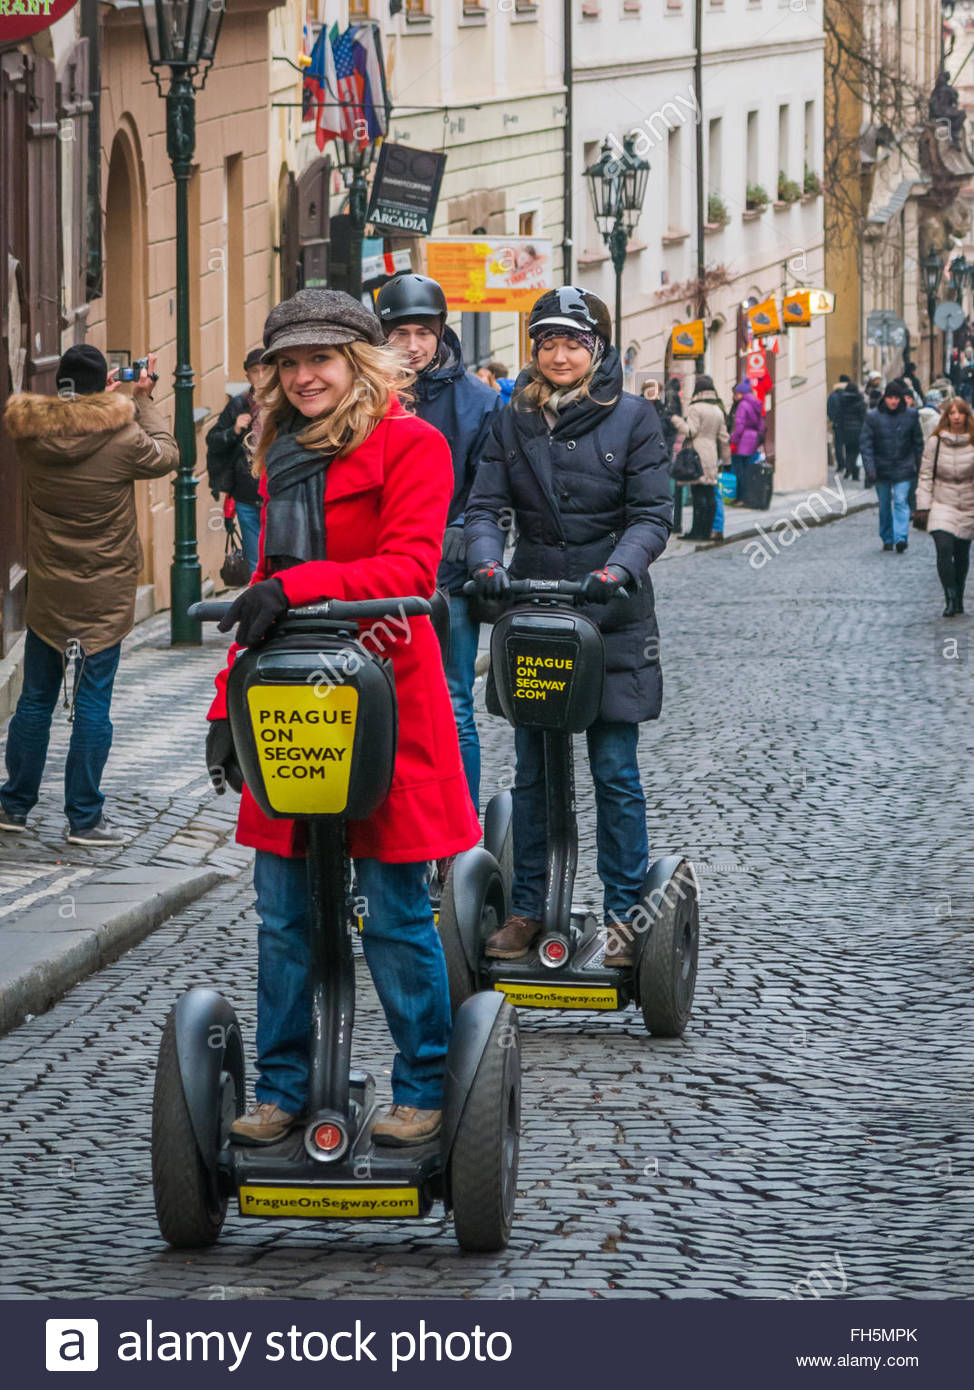 Prague, Czech Republic - 2 January 2014:  Woman tour guide leads tourists on a Segway Tour around the cobbled streets - Stock Image